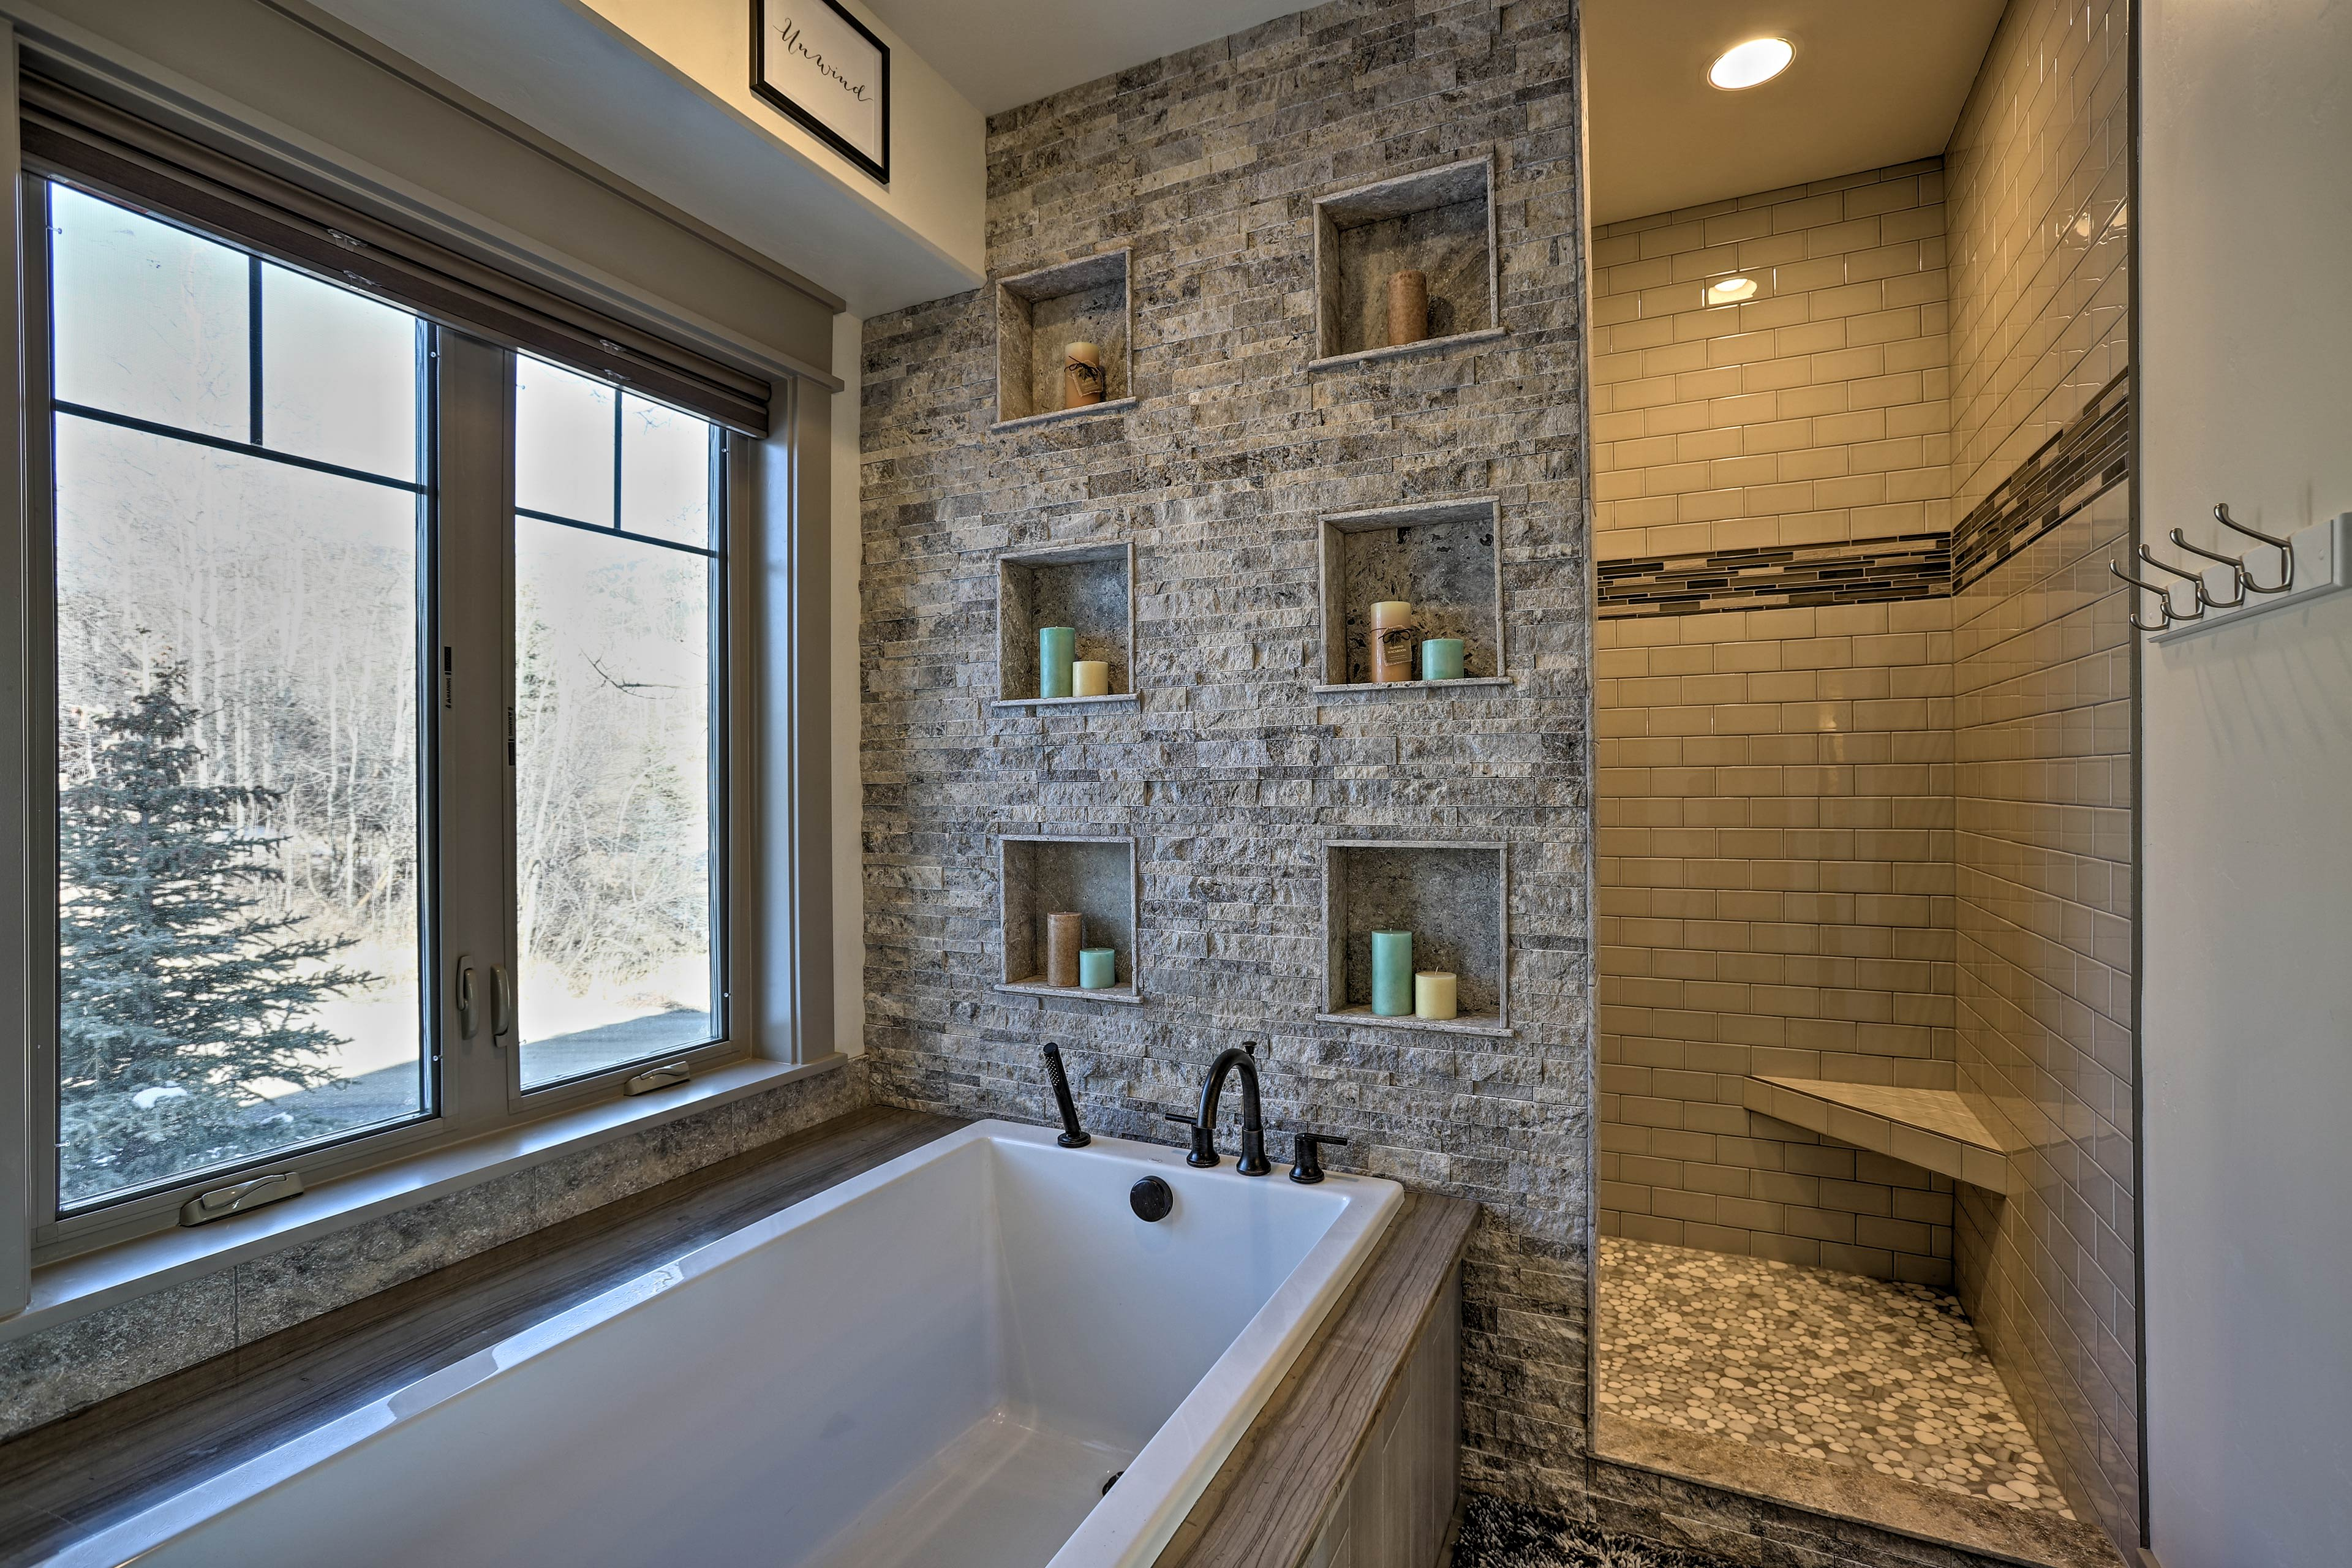 Treat yourself to a bubble bath or rinse off in the luxurious doorless shower.